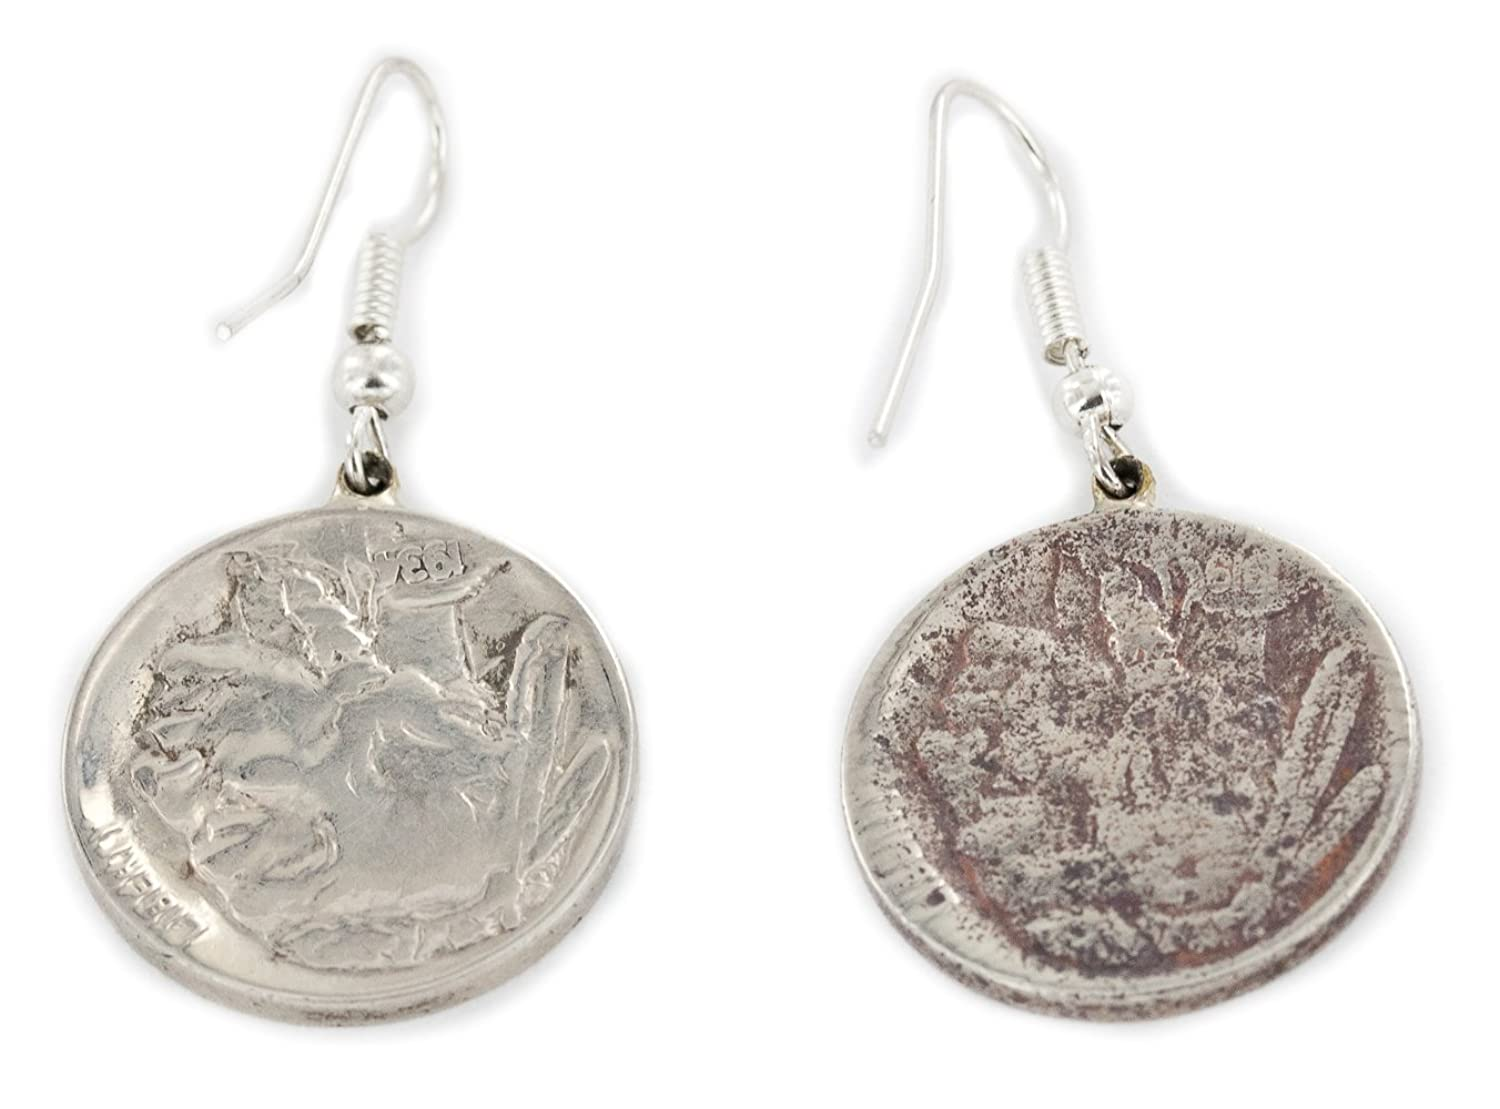 $150 Retail Tag VINTAGE OLD Rusted Buffalo Nickel Coin Authentic Made By Ben T. Riggs Navajo Silver Dangle Earrings